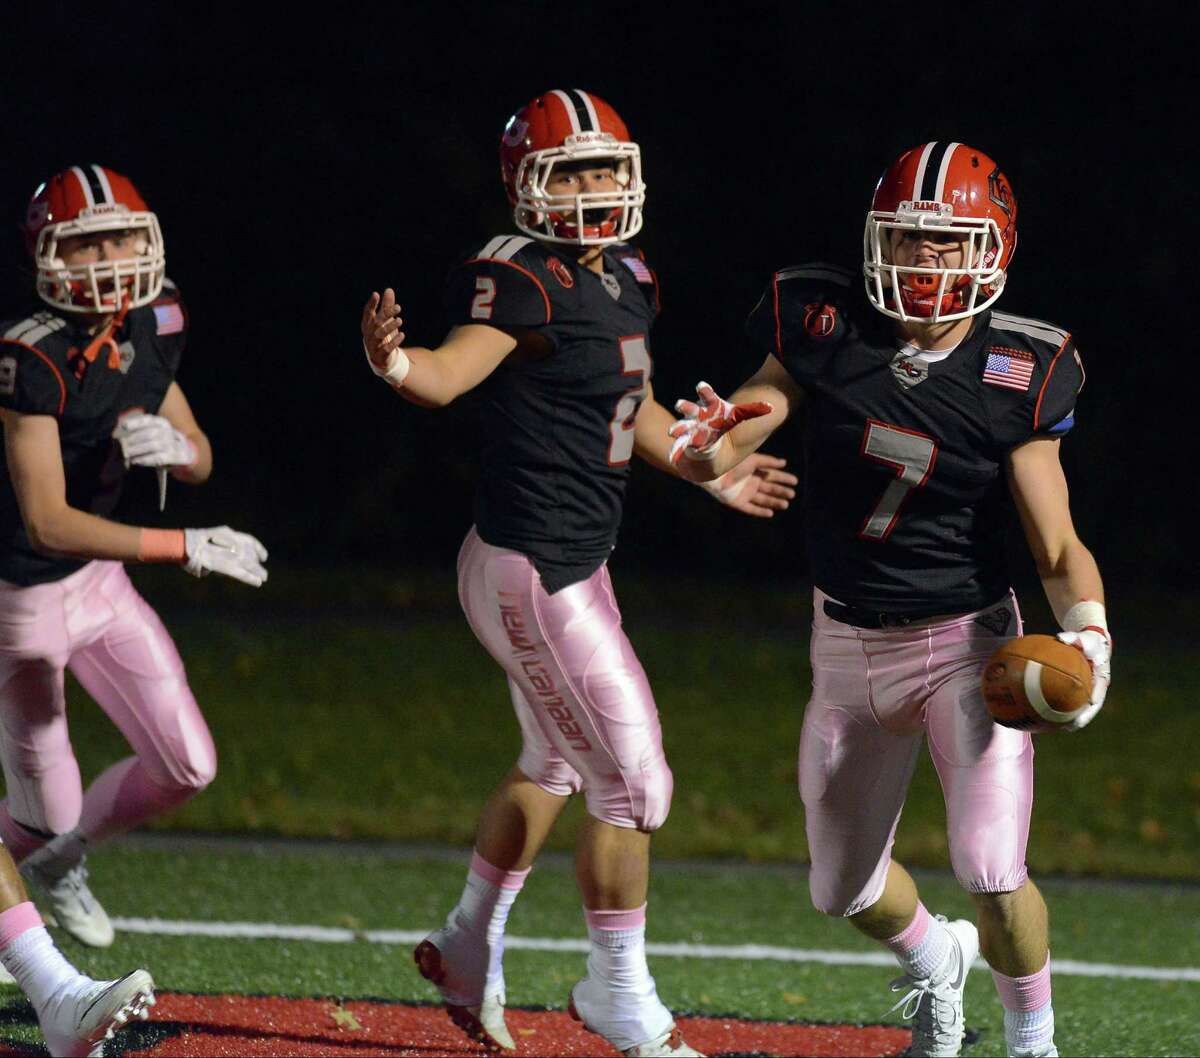 New Canaan Ryan O'Connell (7) celebrates his interception returned for a touchdown against Norwalk in a FCIAC varsity football game at New Canaan High School on Friday, Oct. 28, 2016.